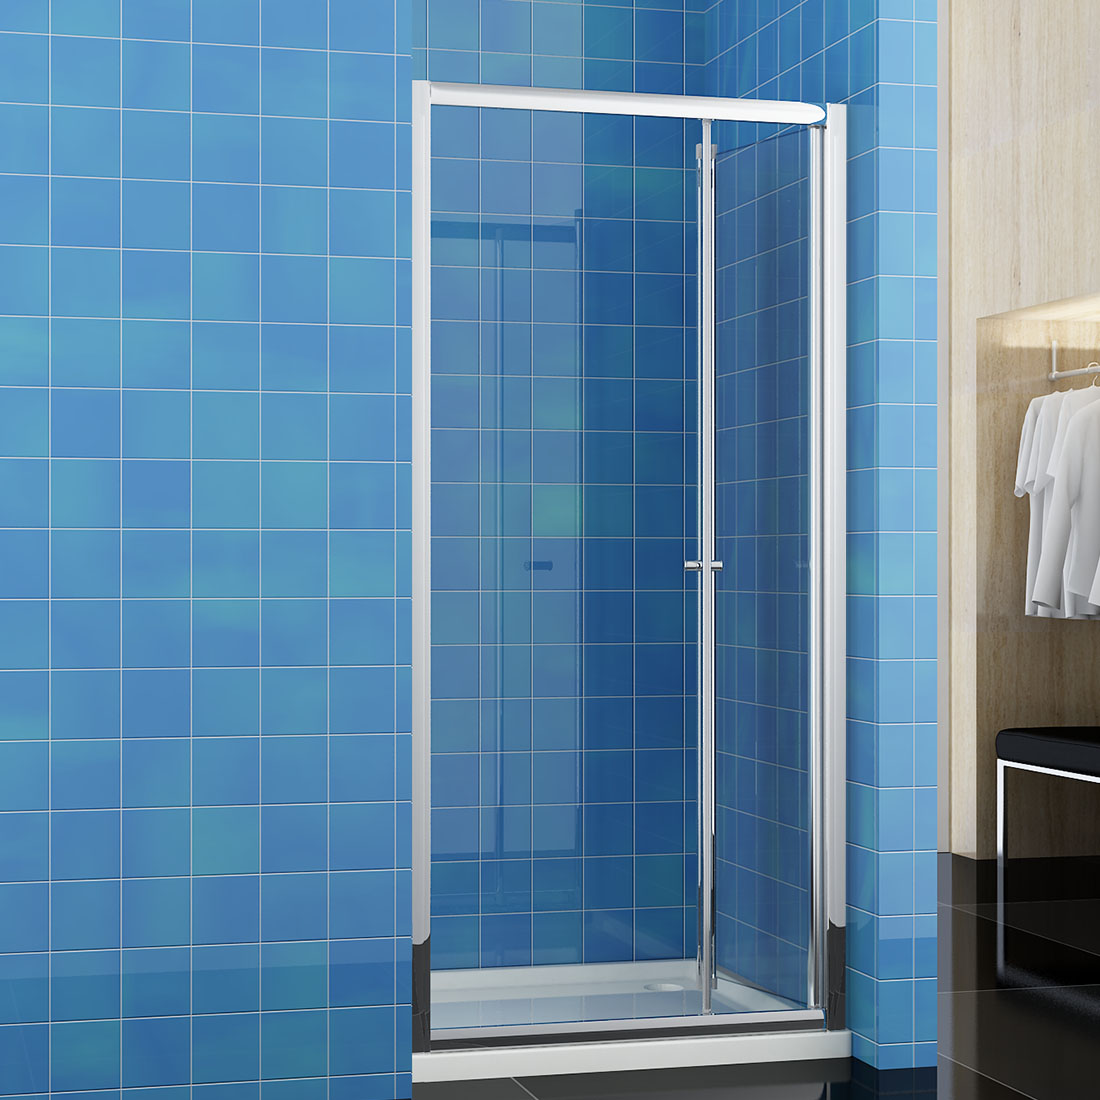 Bathroom Bi Fold Shower Door 900mm Enclosure Cubicle Glass